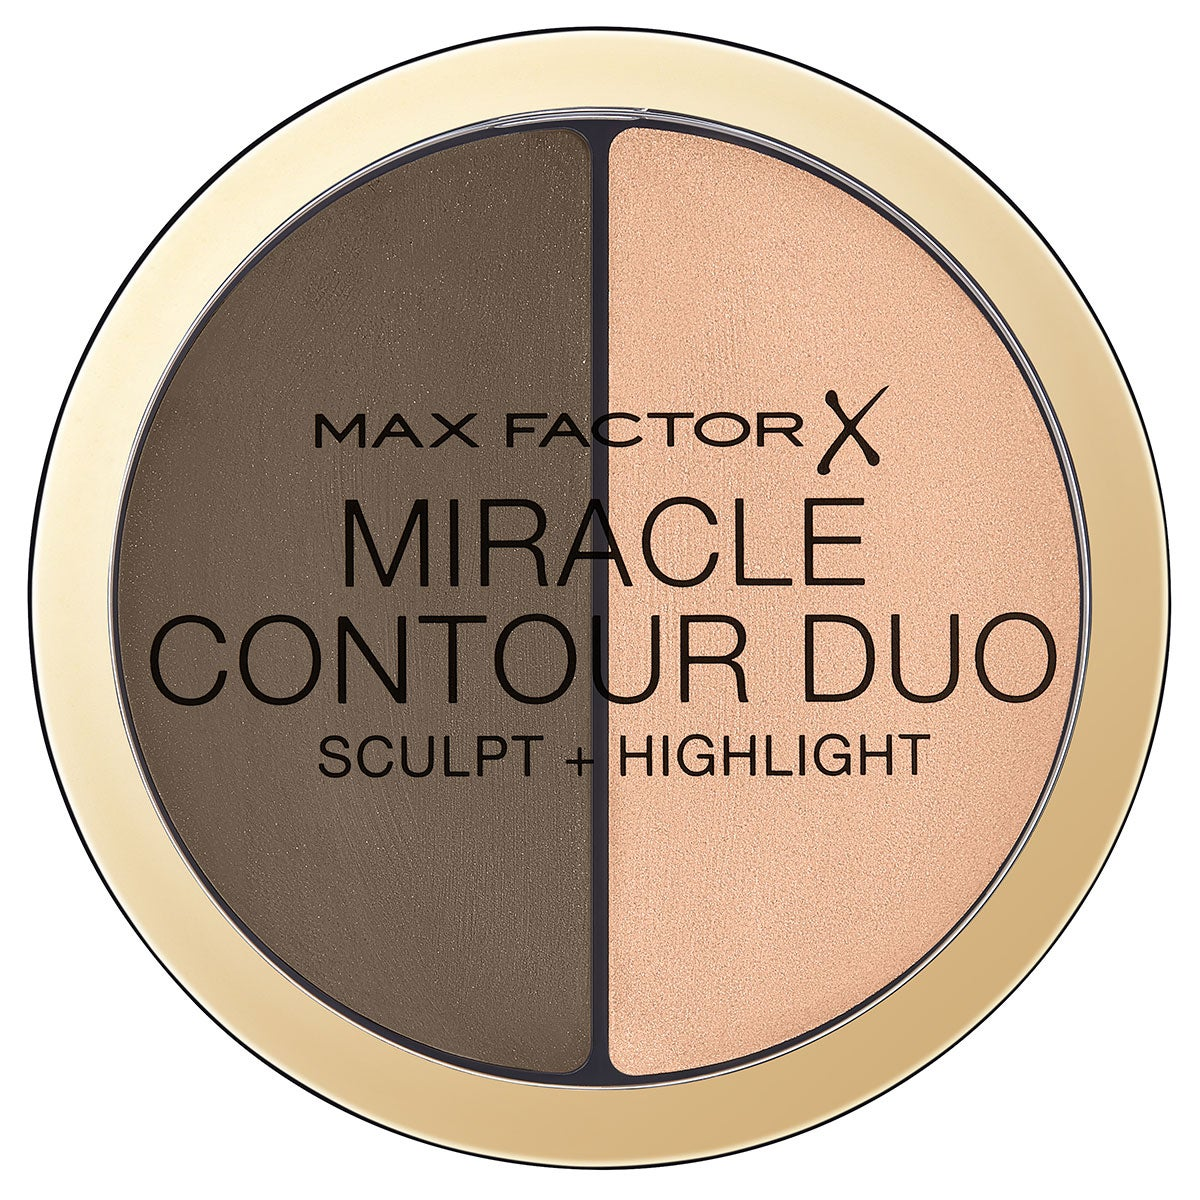 Max Factor Miracle Contour Duo